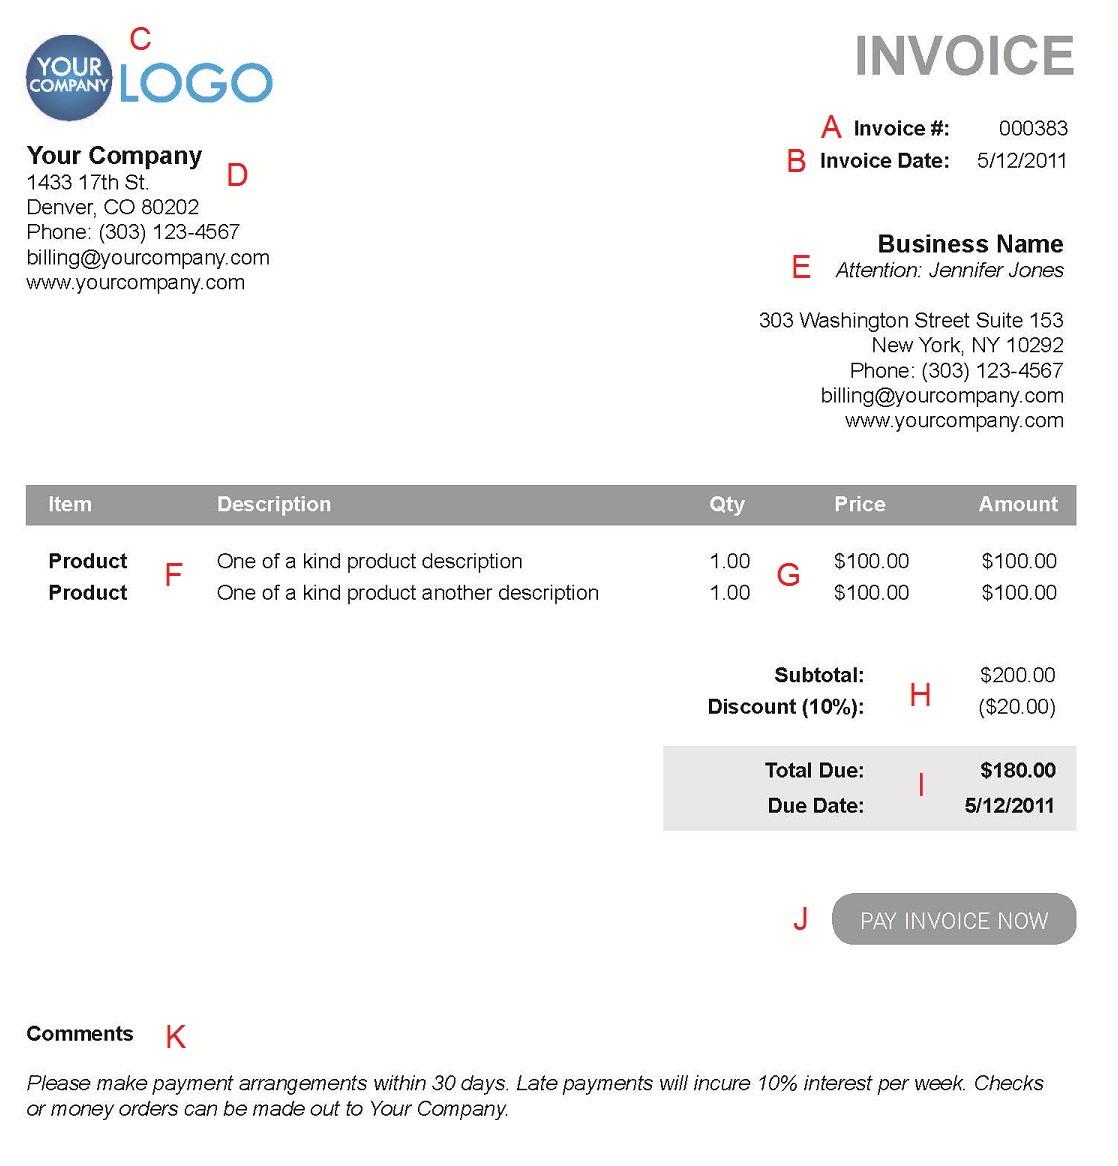 Ultrablogus  Pleasing The  Different Sections Of An Electronic Payment Invoice With Engaging A  With Appealing Invoice Billing Also Factory Invoice Price Vs Msrp In Addition Excel Invoice Template Mac And Quote Vs Invoice As Well As Freshbooks Invoice Template Additionally Car Repair Invoice From Paysimplecom With Ultrablogus  Engaging The  Different Sections Of An Electronic Payment Invoice With Appealing A  And Pleasing Invoice Billing Also Factory Invoice Price Vs Msrp In Addition Excel Invoice Template Mac From Paysimplecom